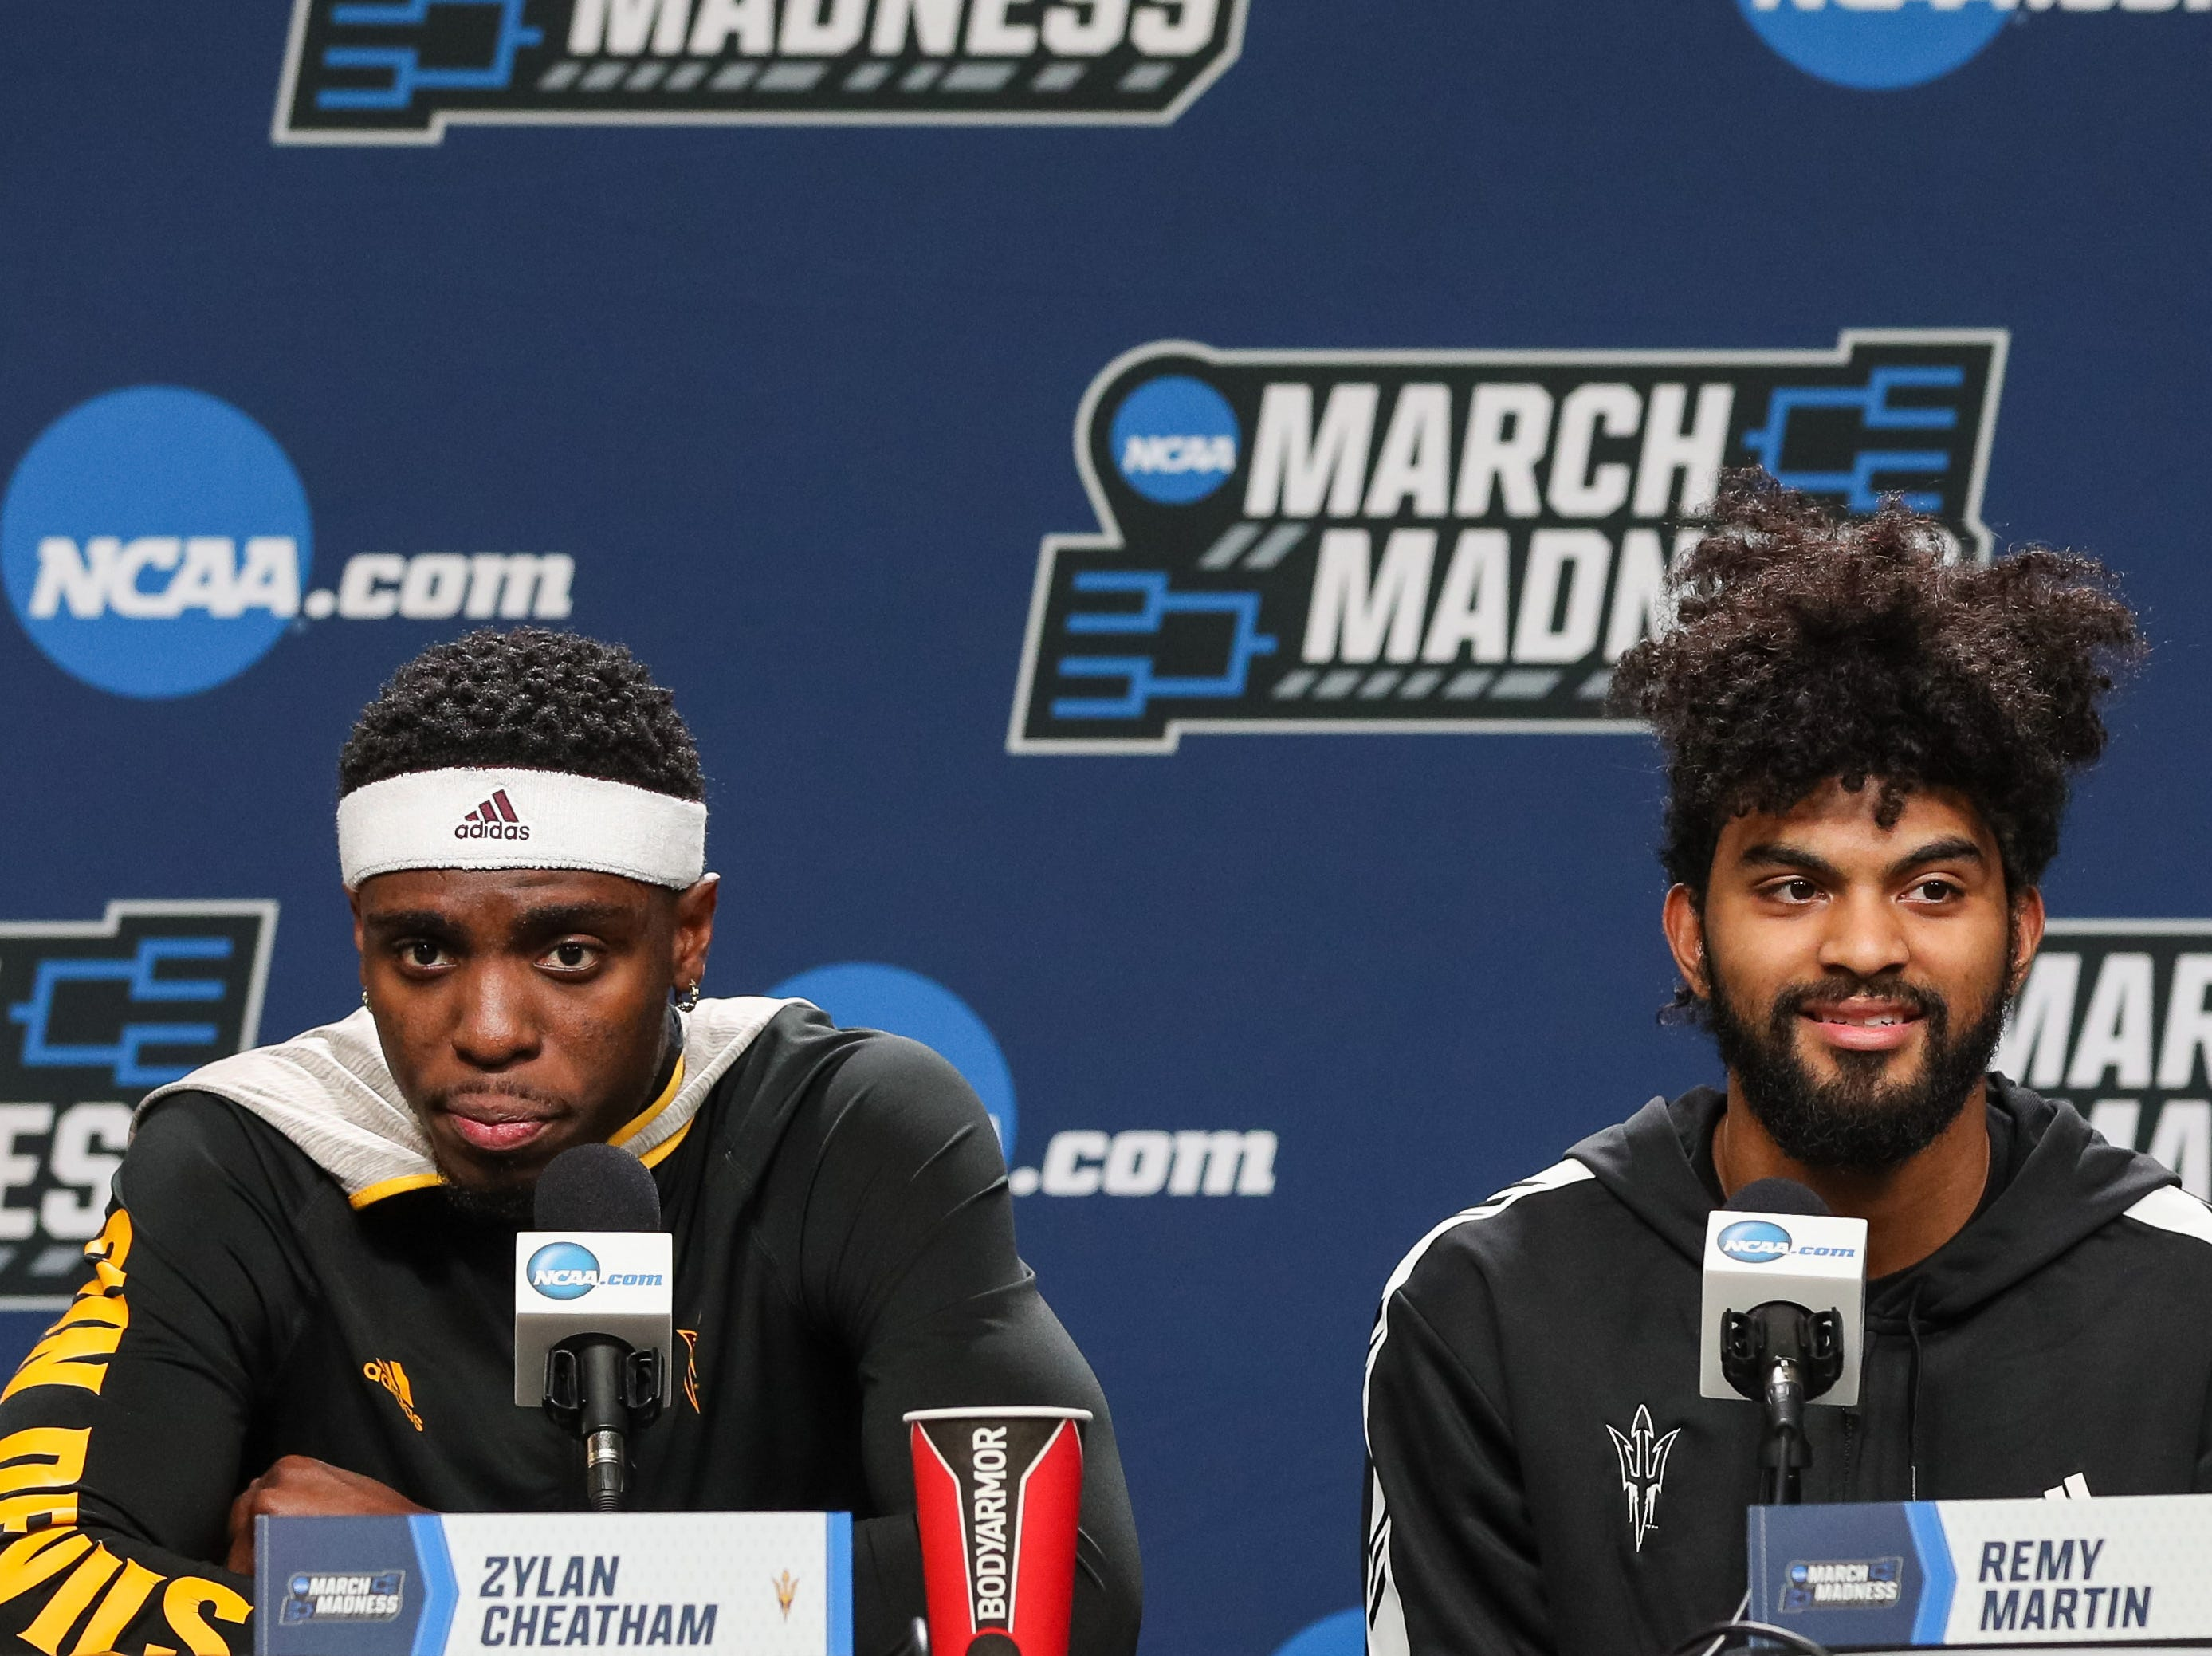 Mar 21, 2019; Tulsa, OK, USA; Arizona State Sun Devils forward Zylan Cheatham (left) and guard Remy Martin answers questions during a press conference before the first round of the 2019 NCAA Tournament at  BOK Center. Mandatory Credit: Brett Rojo-USA TODAY Sports